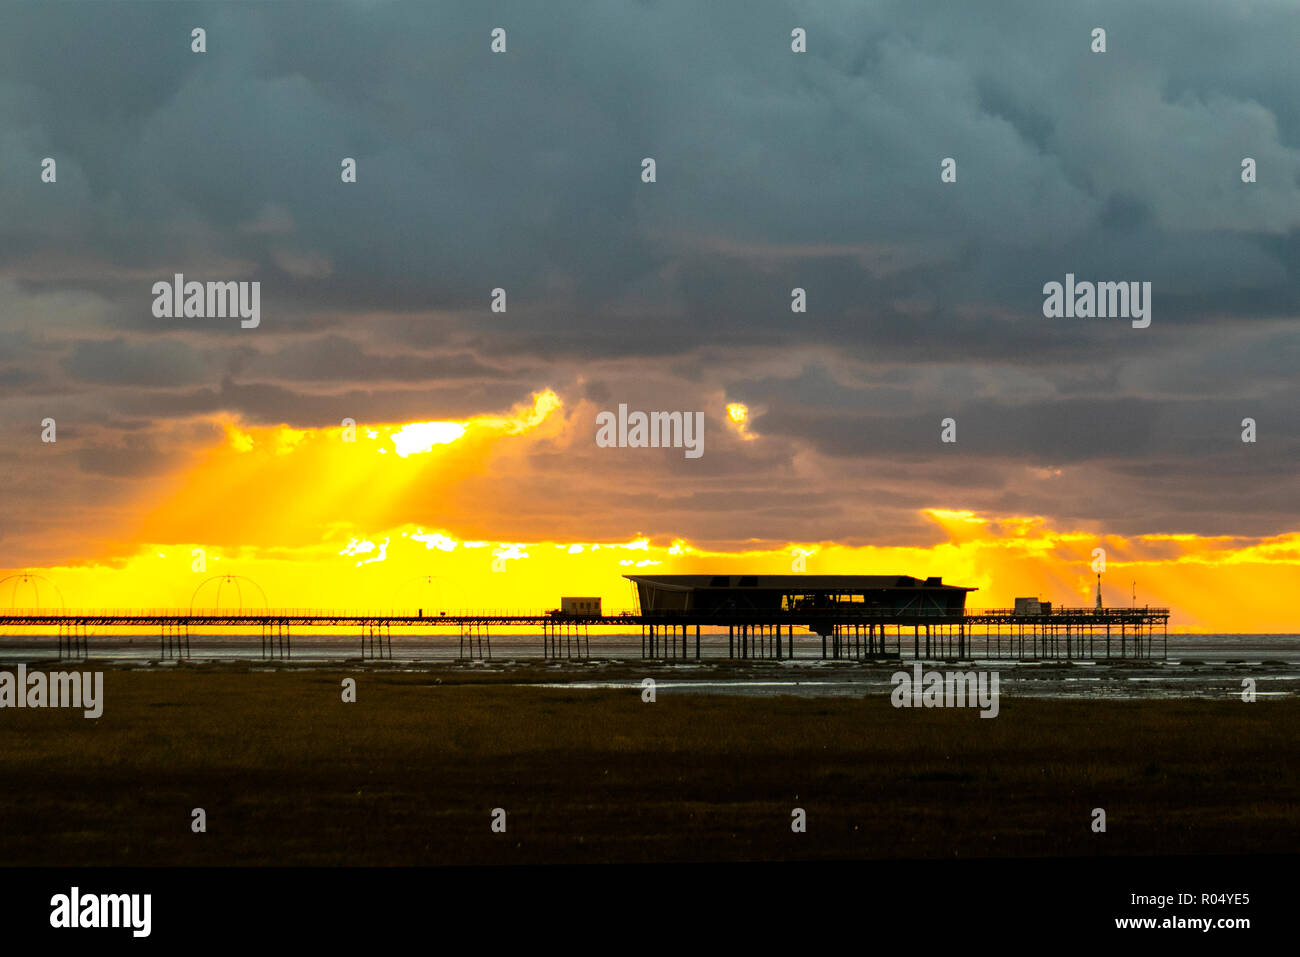 Southport, Merseyside. 1st Nov 2018.Heavy showers, cumulonimbus clouds, and turbulent skies at sunset. Storm clouds gather over the coastal resort pier and beach. Credit; MediaWorldImages/AlamyLiveNews - Stock Image